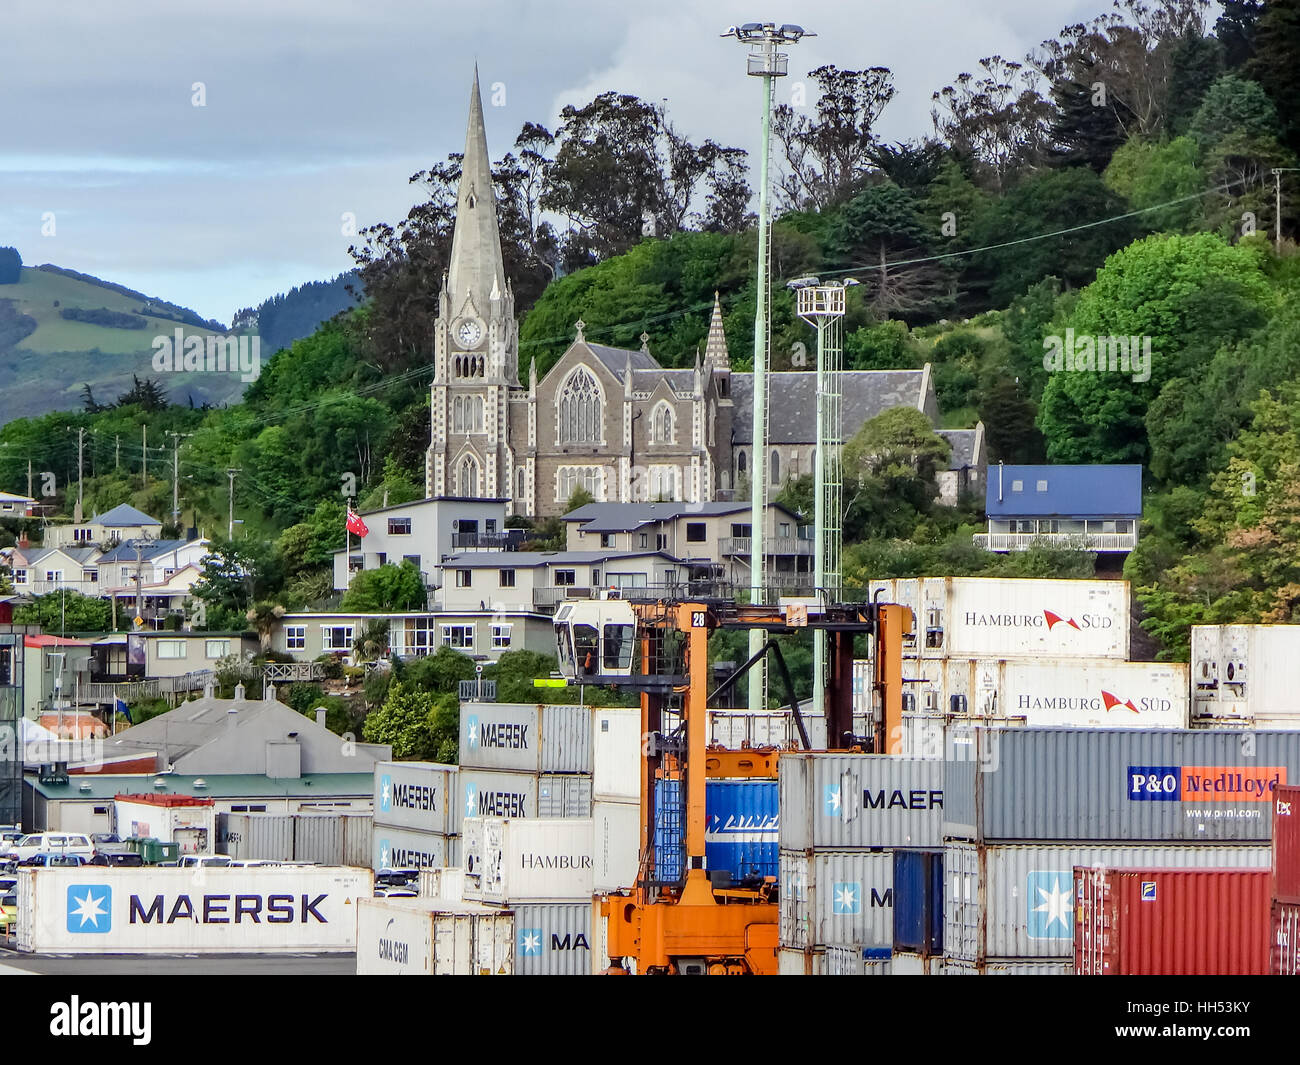 Church in backdrop of Port Chalmers, Dunedin, New Zealand - Stock Image